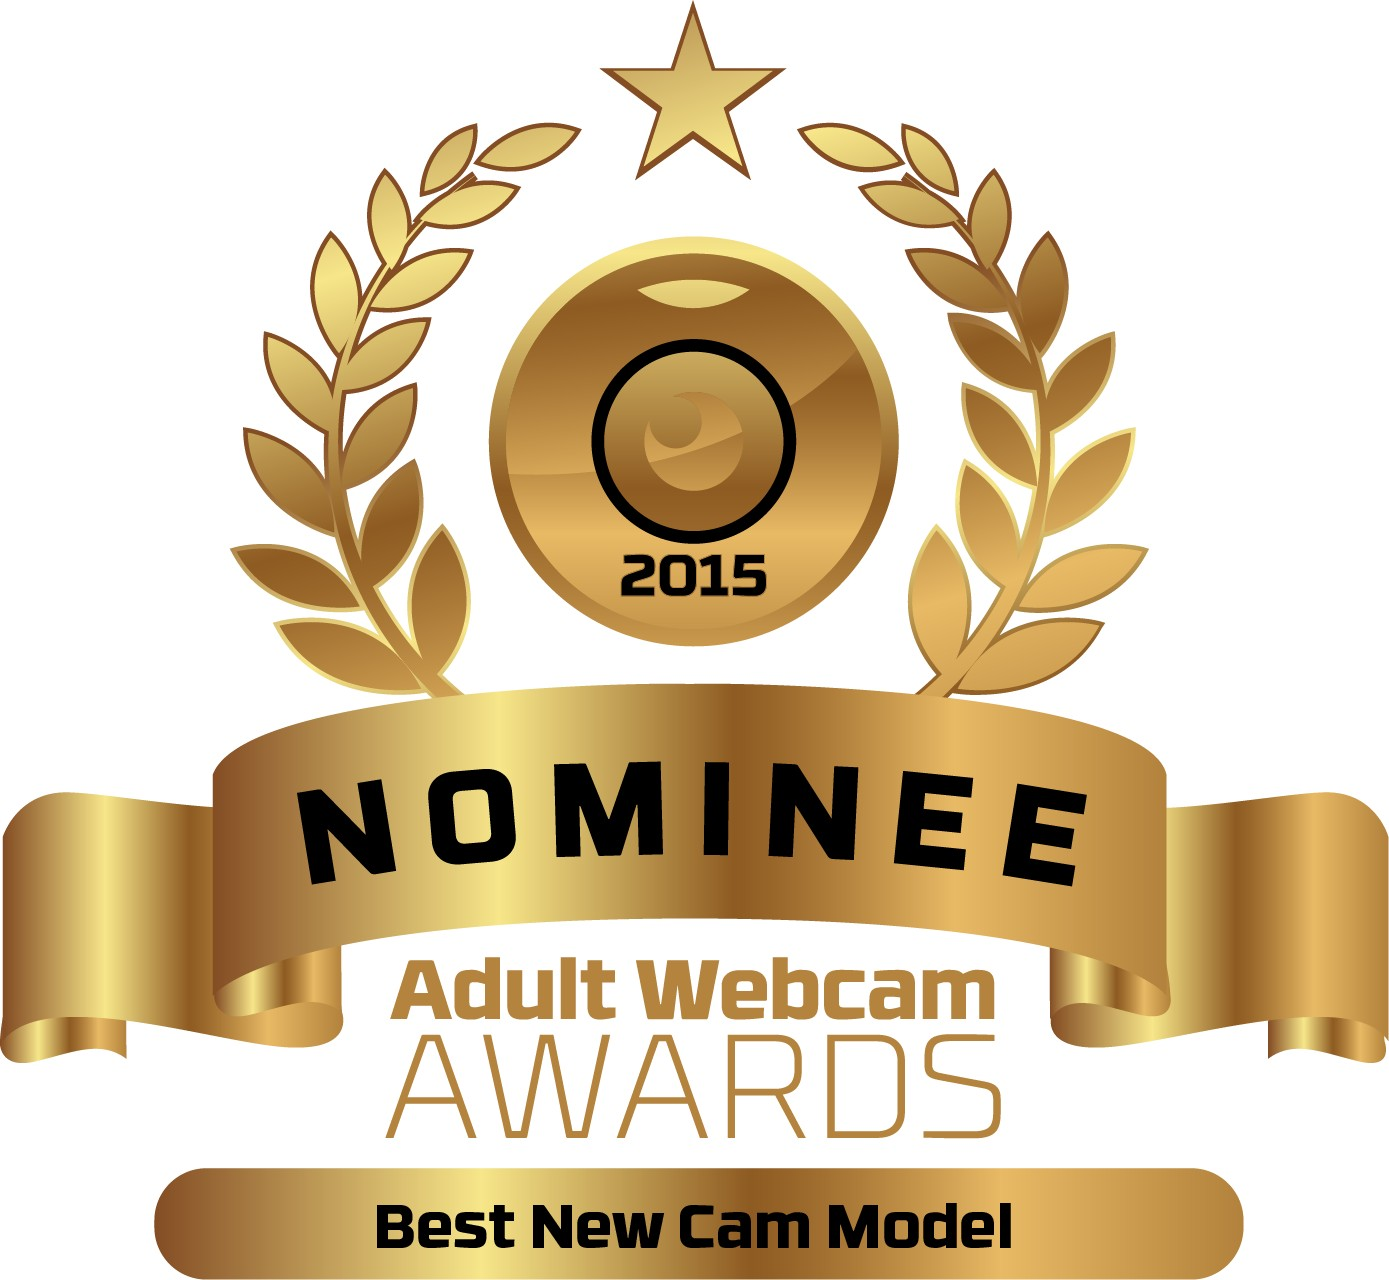 Best New Cam Model Nominee